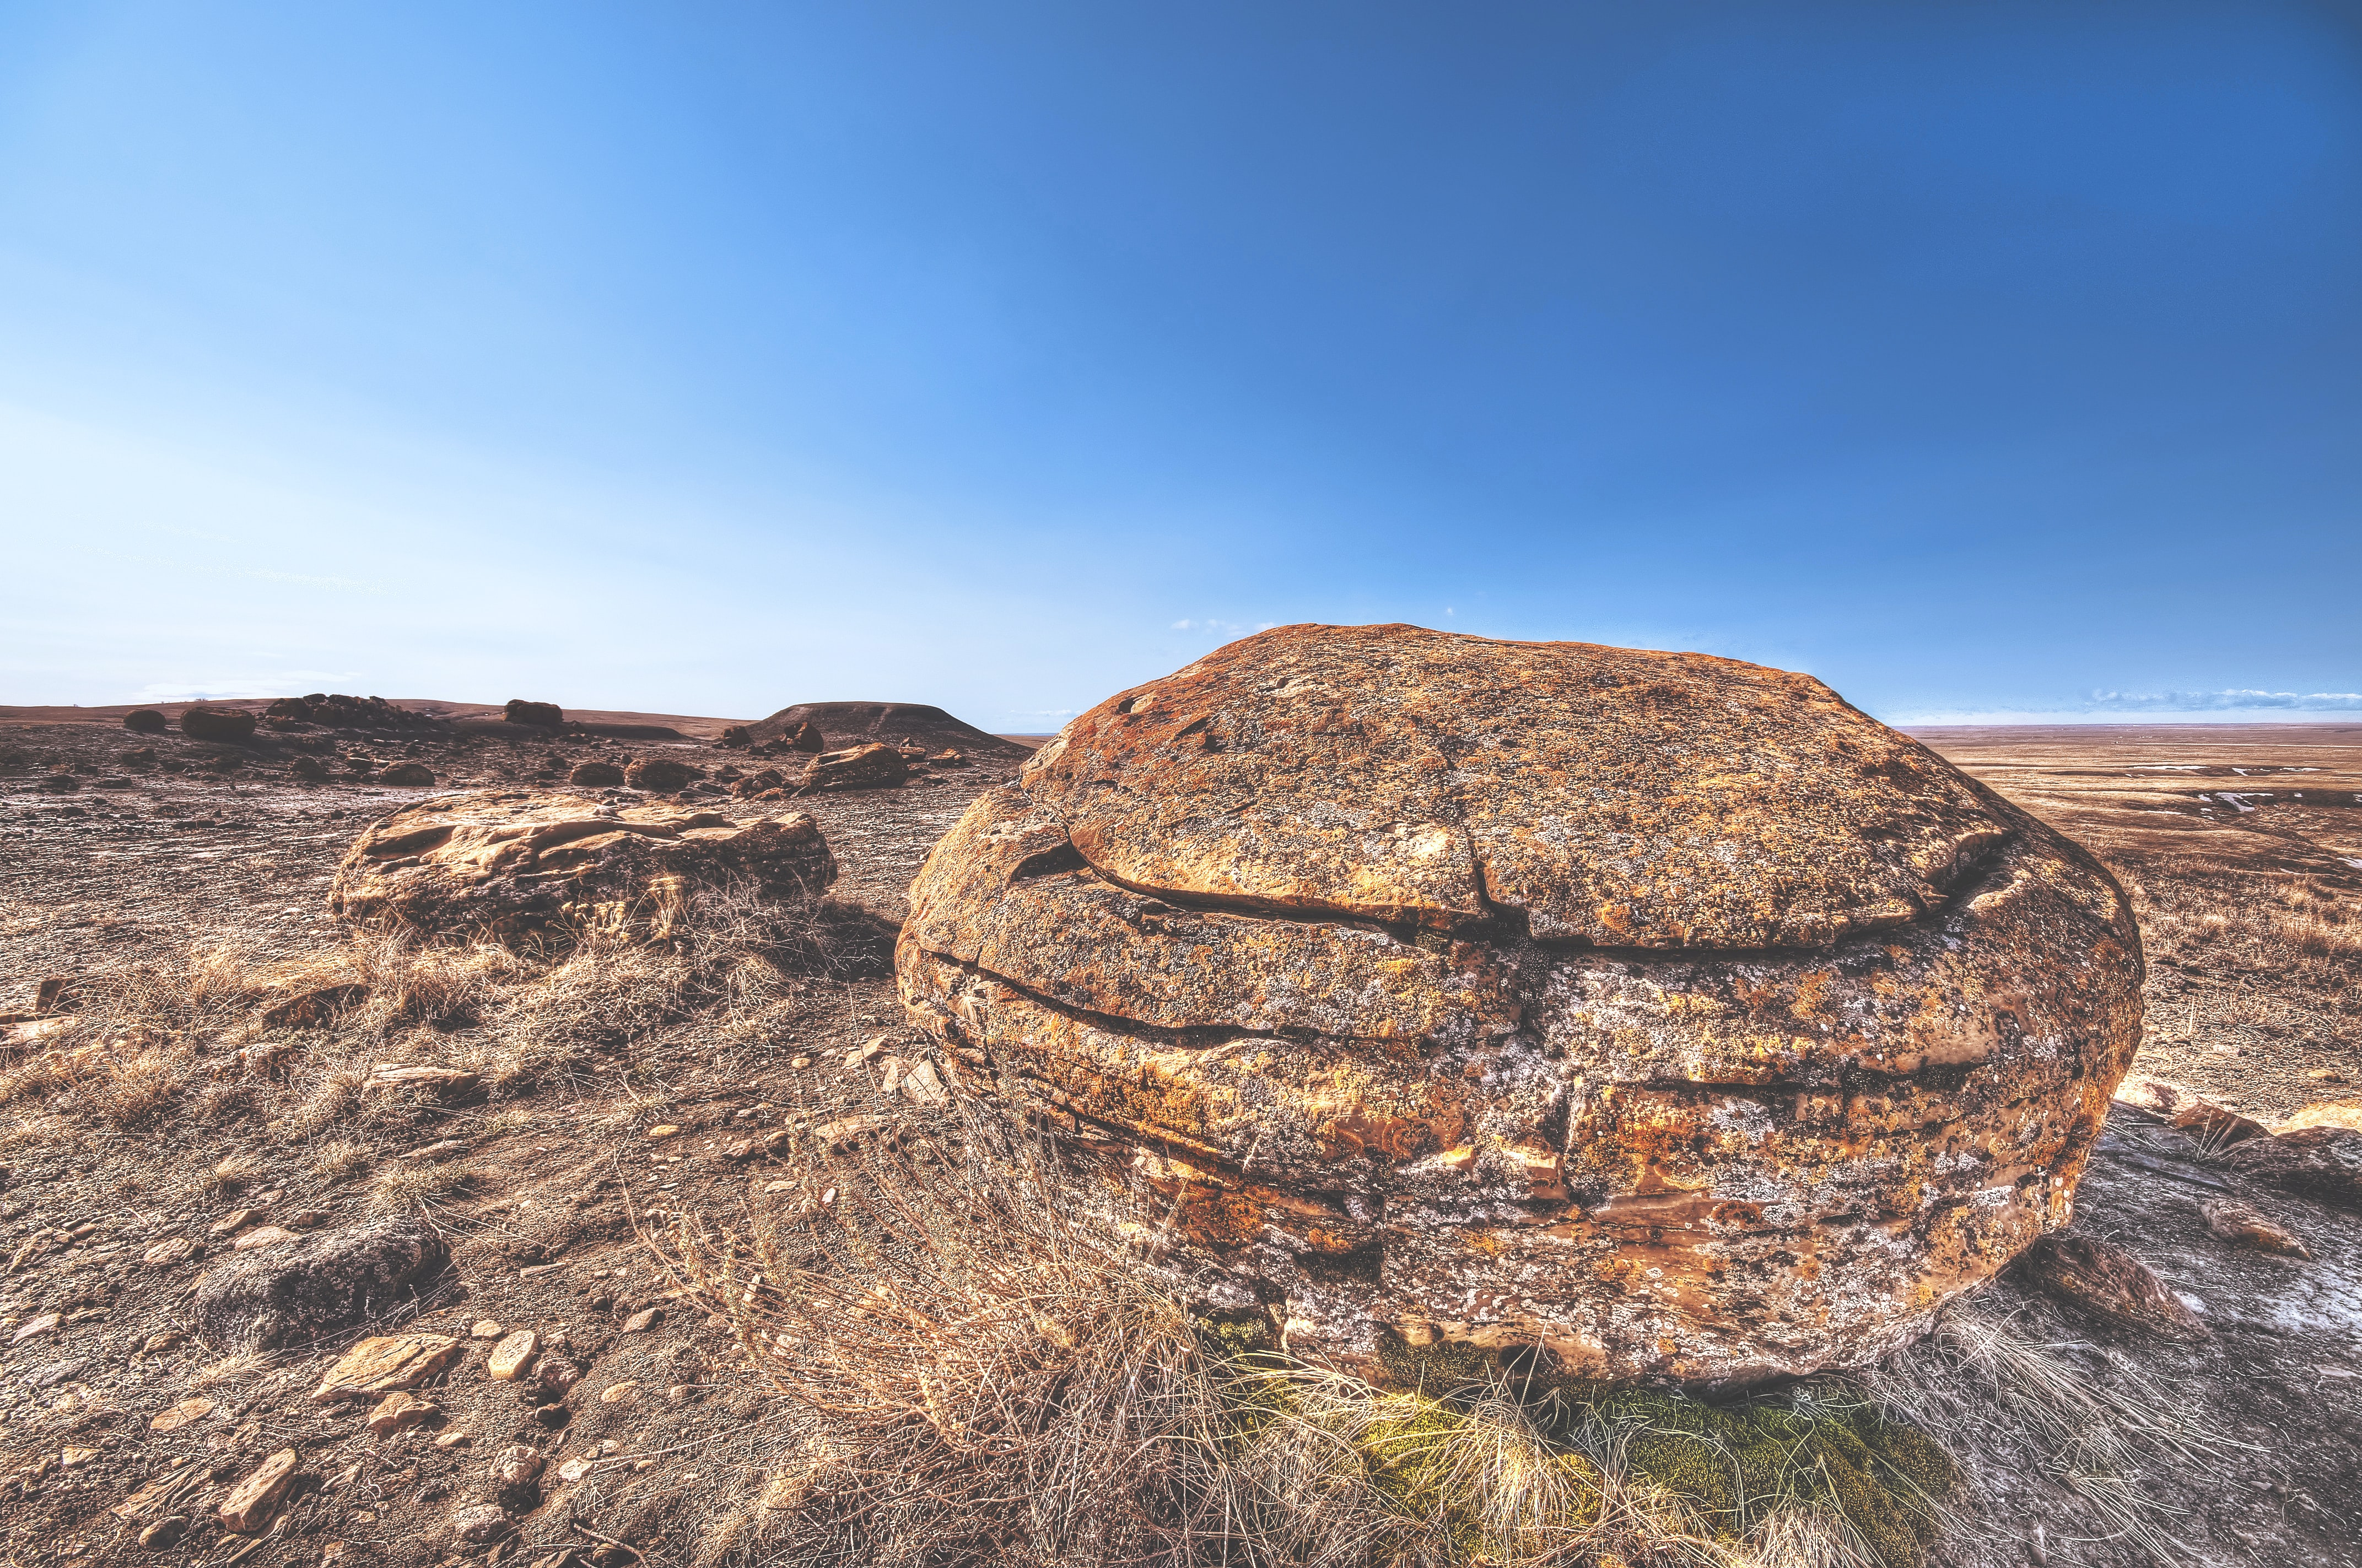 brown rock on deserted land under blue sky during daytime